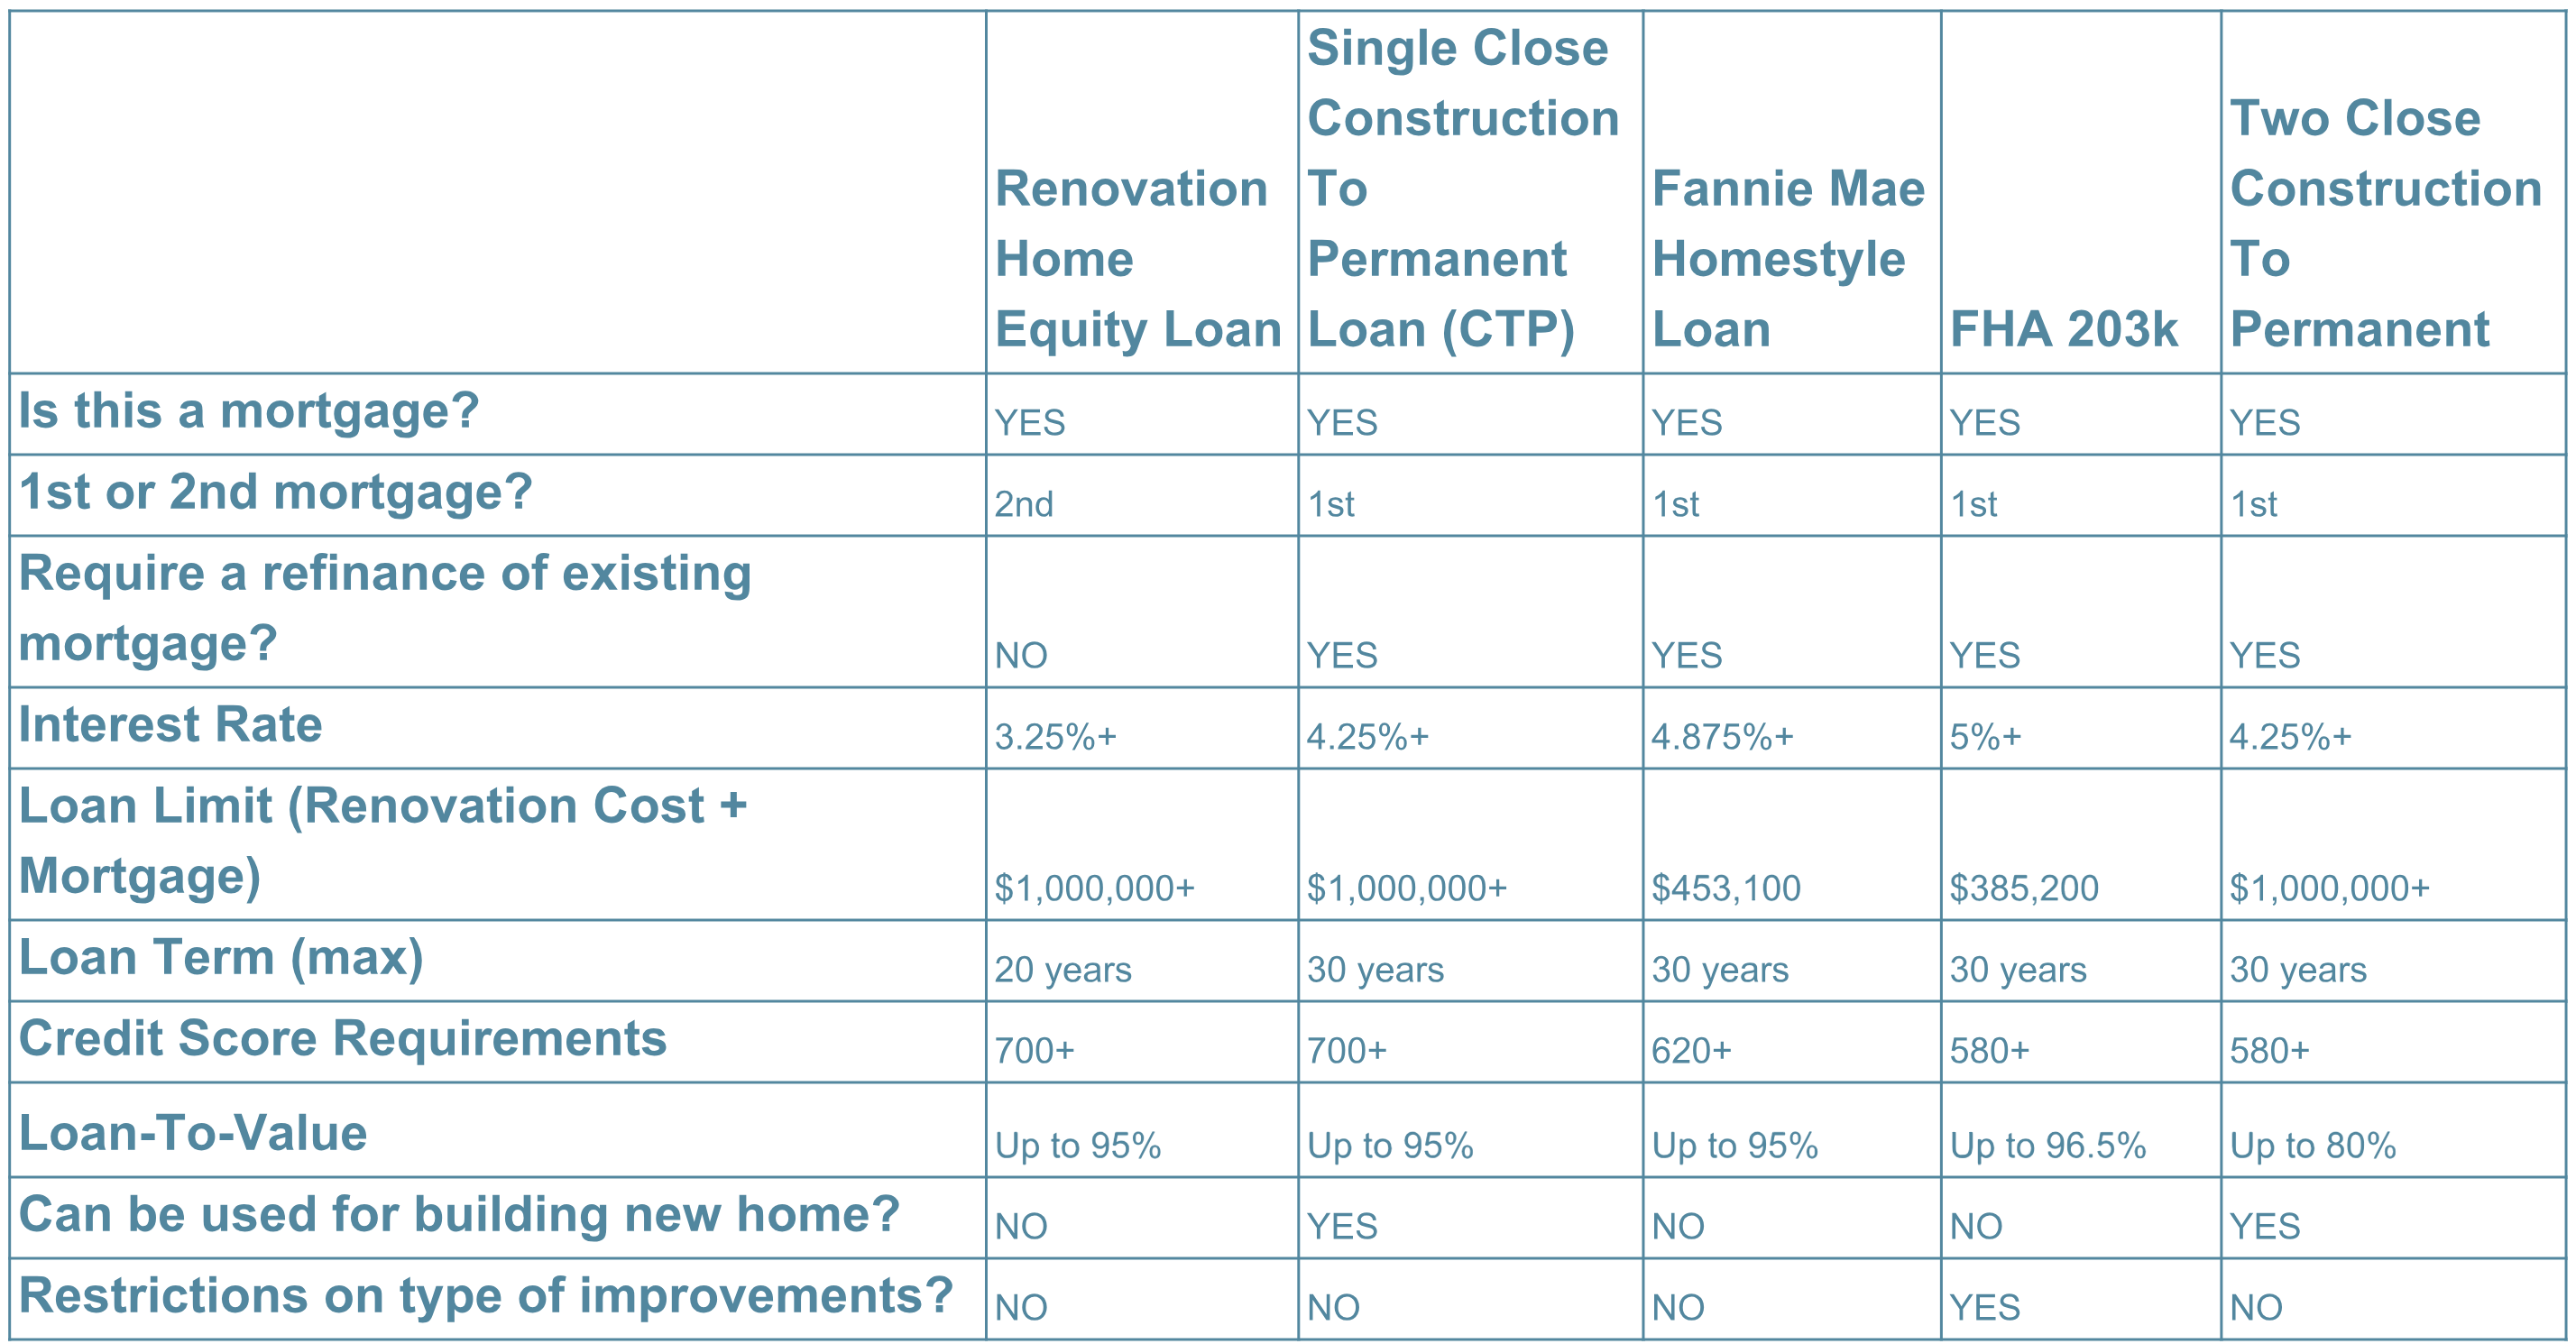 Side-by-Side Comparison of Renovation Loans